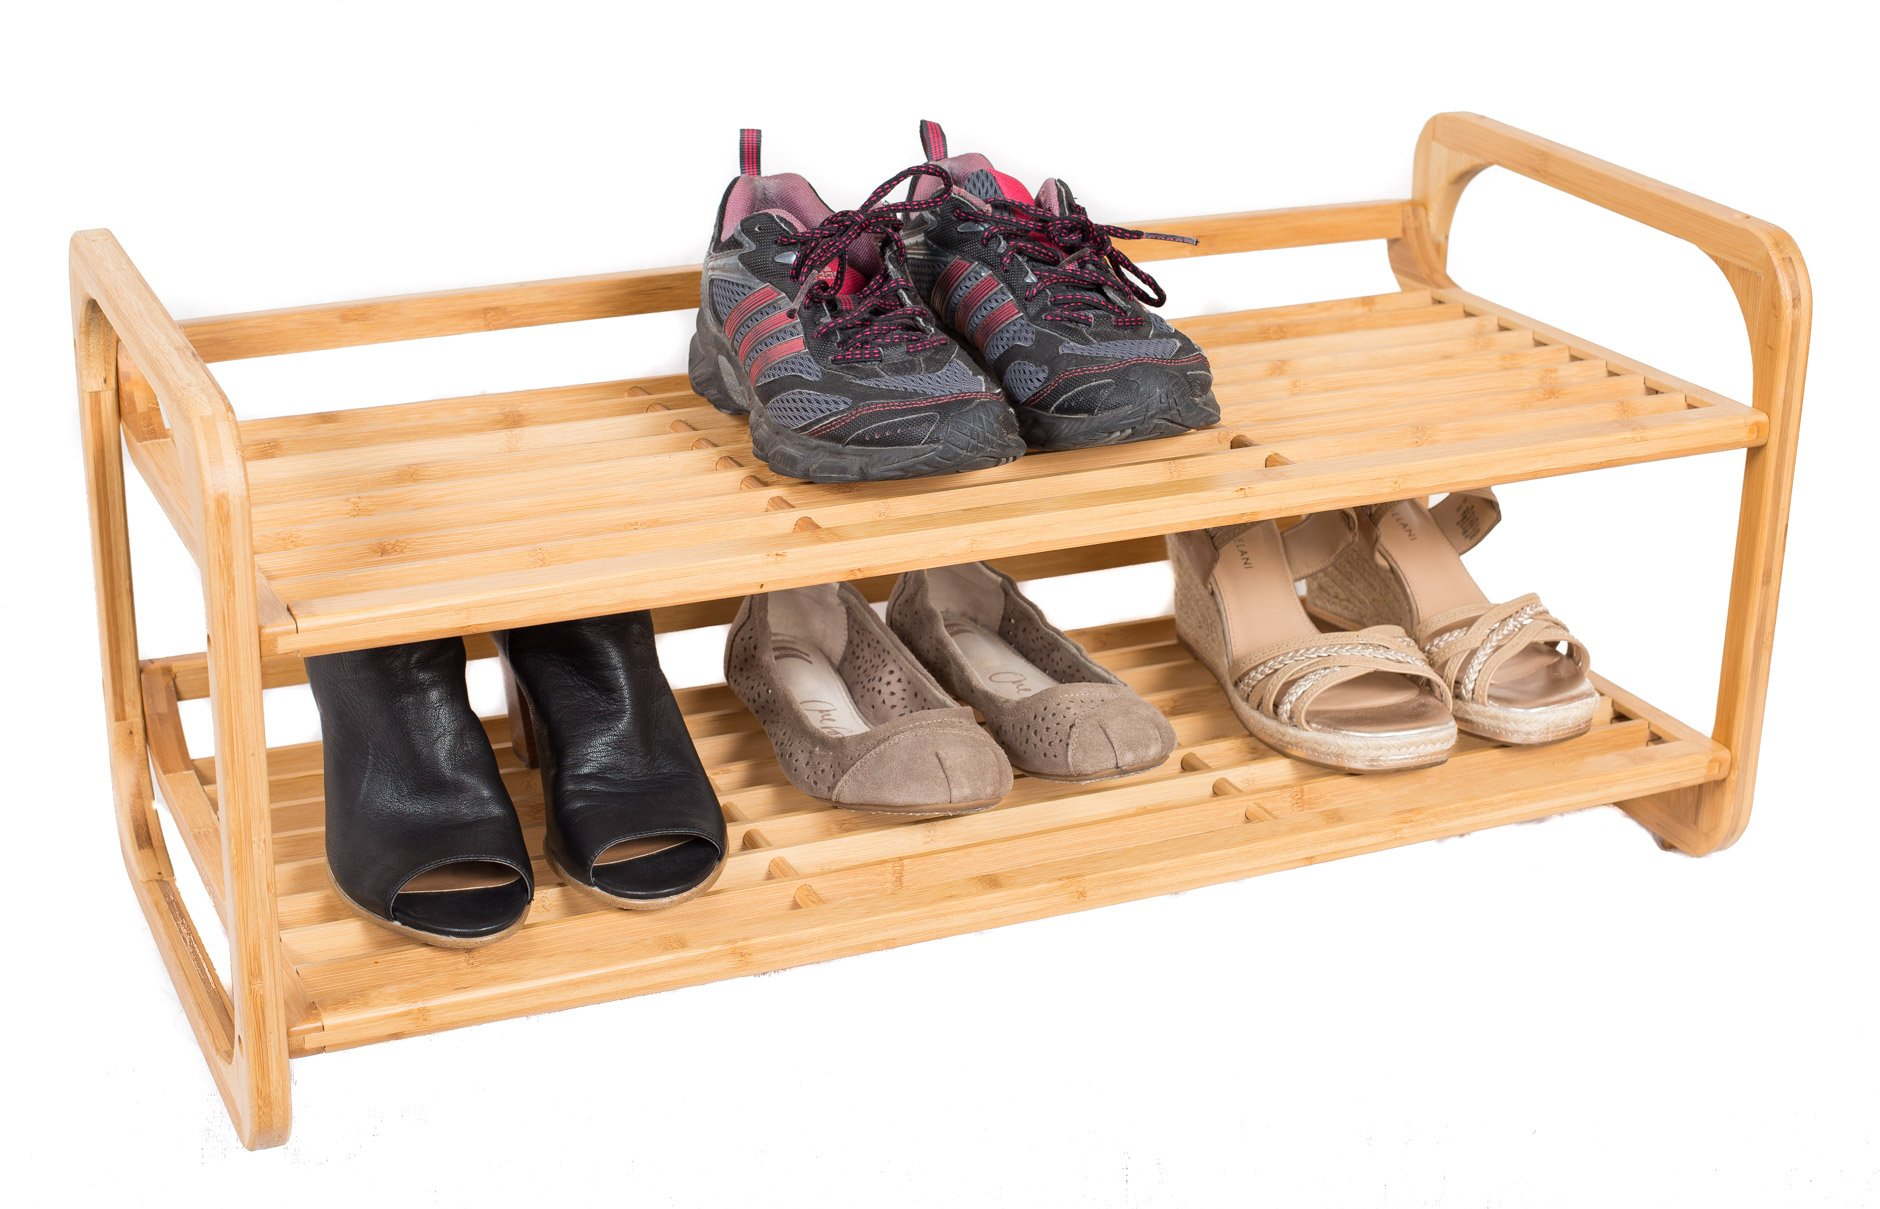 BirdRock Home 2-Tier Bamboo Shoe Rack | Environmentally Friendly | Fits 6-8 Shoes by BirdRock Home (Image #1)